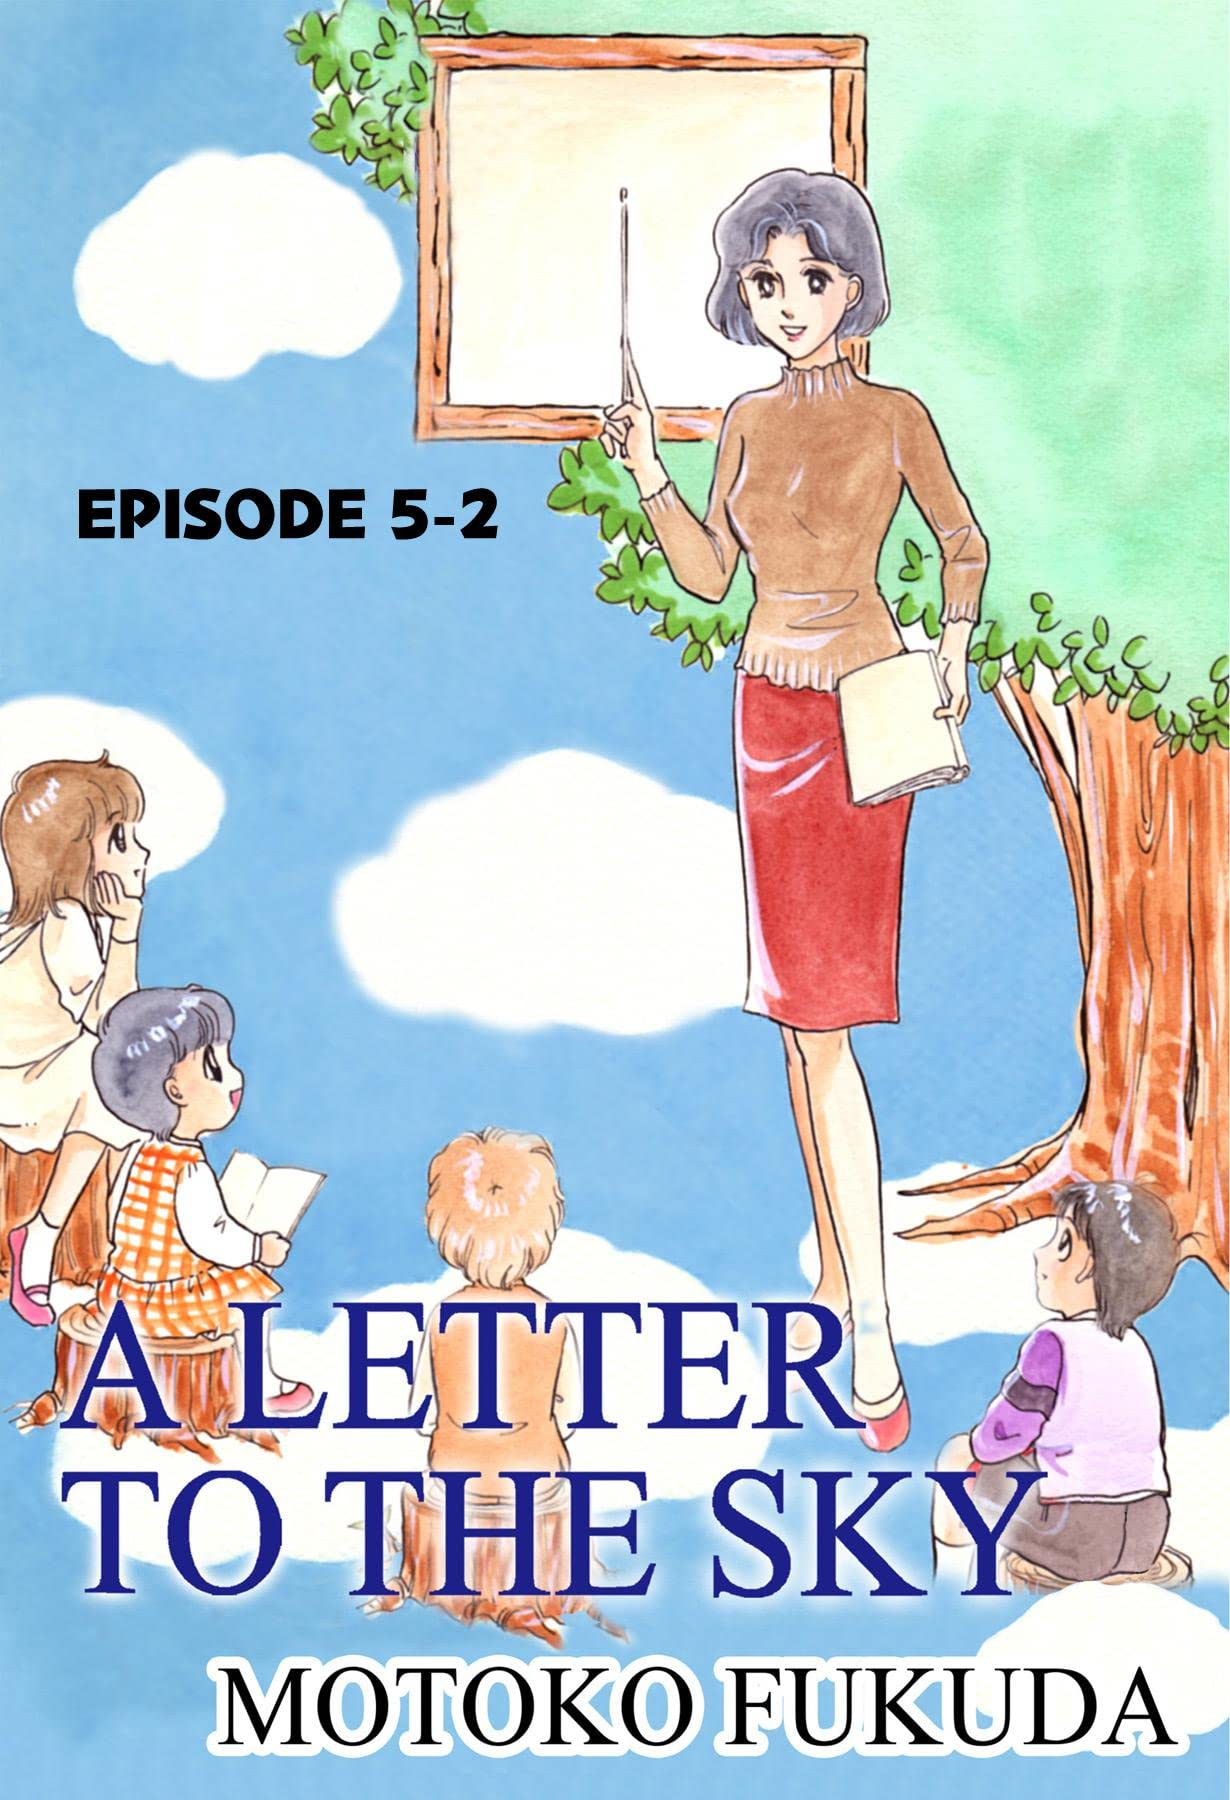 A LETTER TO THE SKY #34